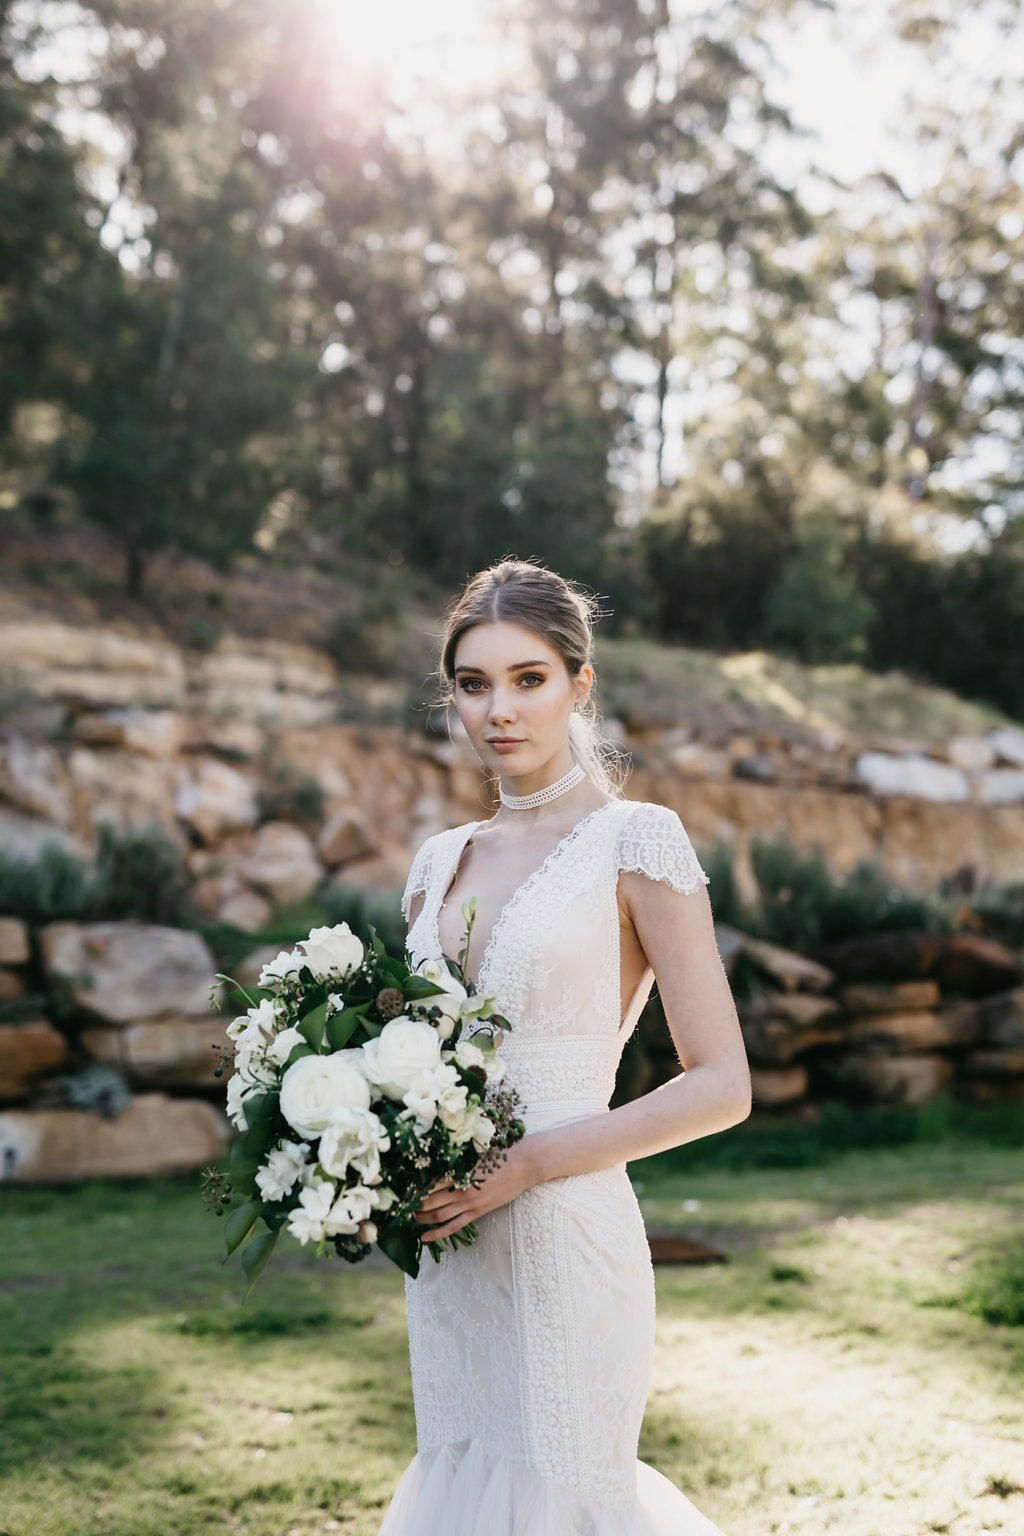 leah  The Leah gown is one of vintage romance with an enchanted bohemian spirit featuring its clean lines that sculpts the feminine body, made from pure silk with a mixture of textured laces & a full tulle skirt.